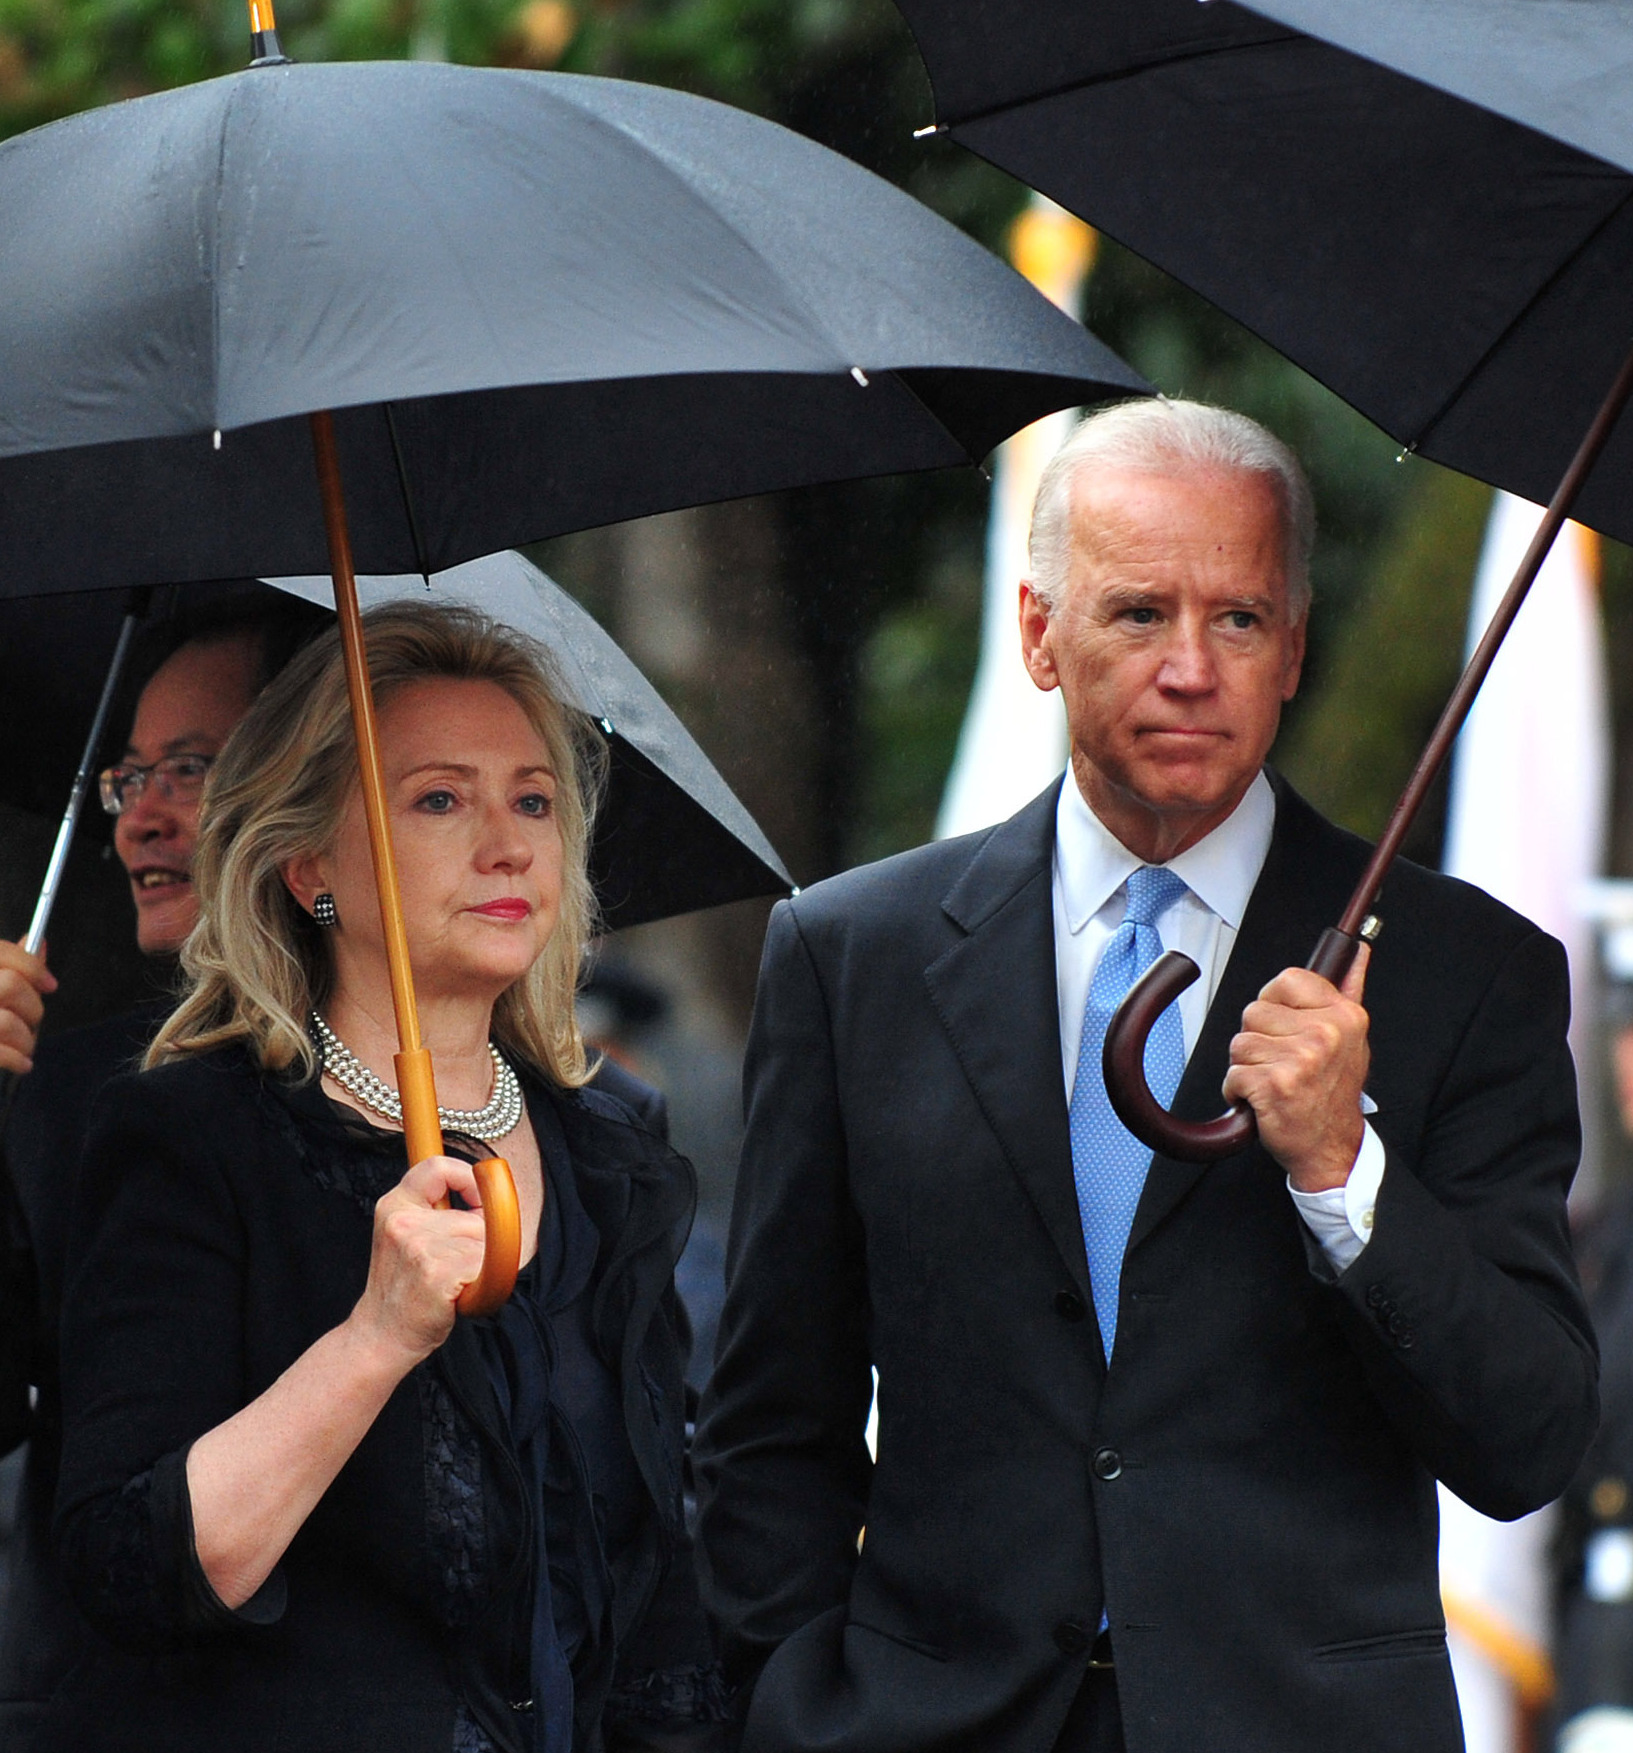 Obama Aides Considered A Clinton-For-Biden Switch, Book Says